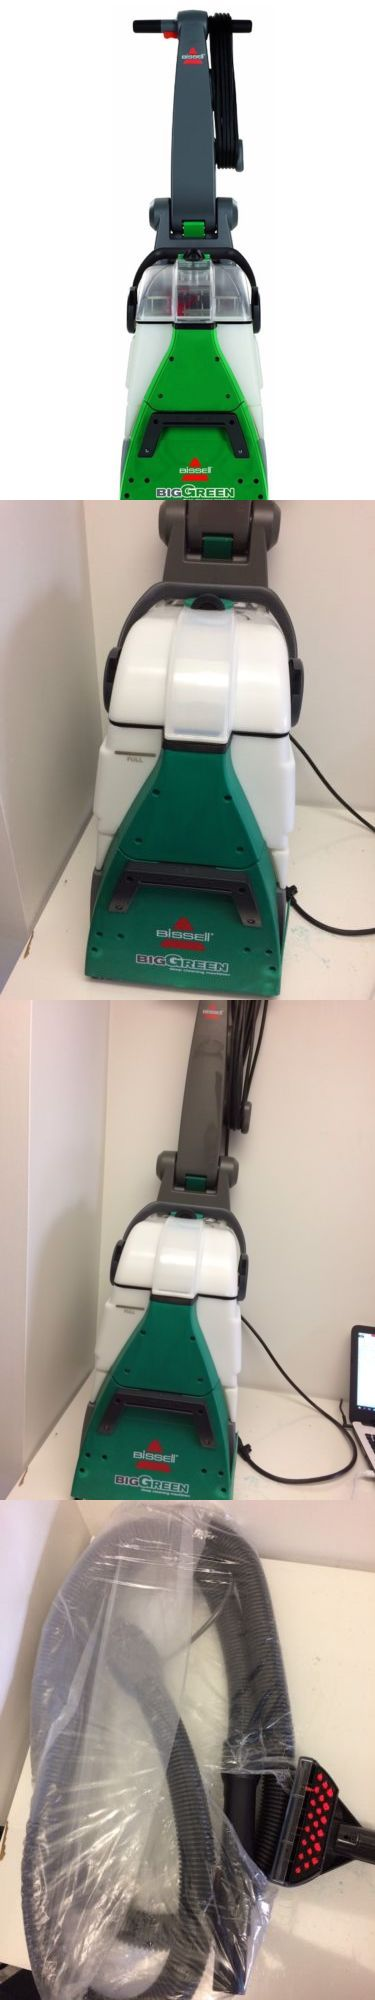 Carpet Shampooers 177746: Bissell Big Green 86T3 Deep Cleaning Machine Carpet Cleaner Professional Grade -> BUY IT NOW ONLY: $374 on eBay!